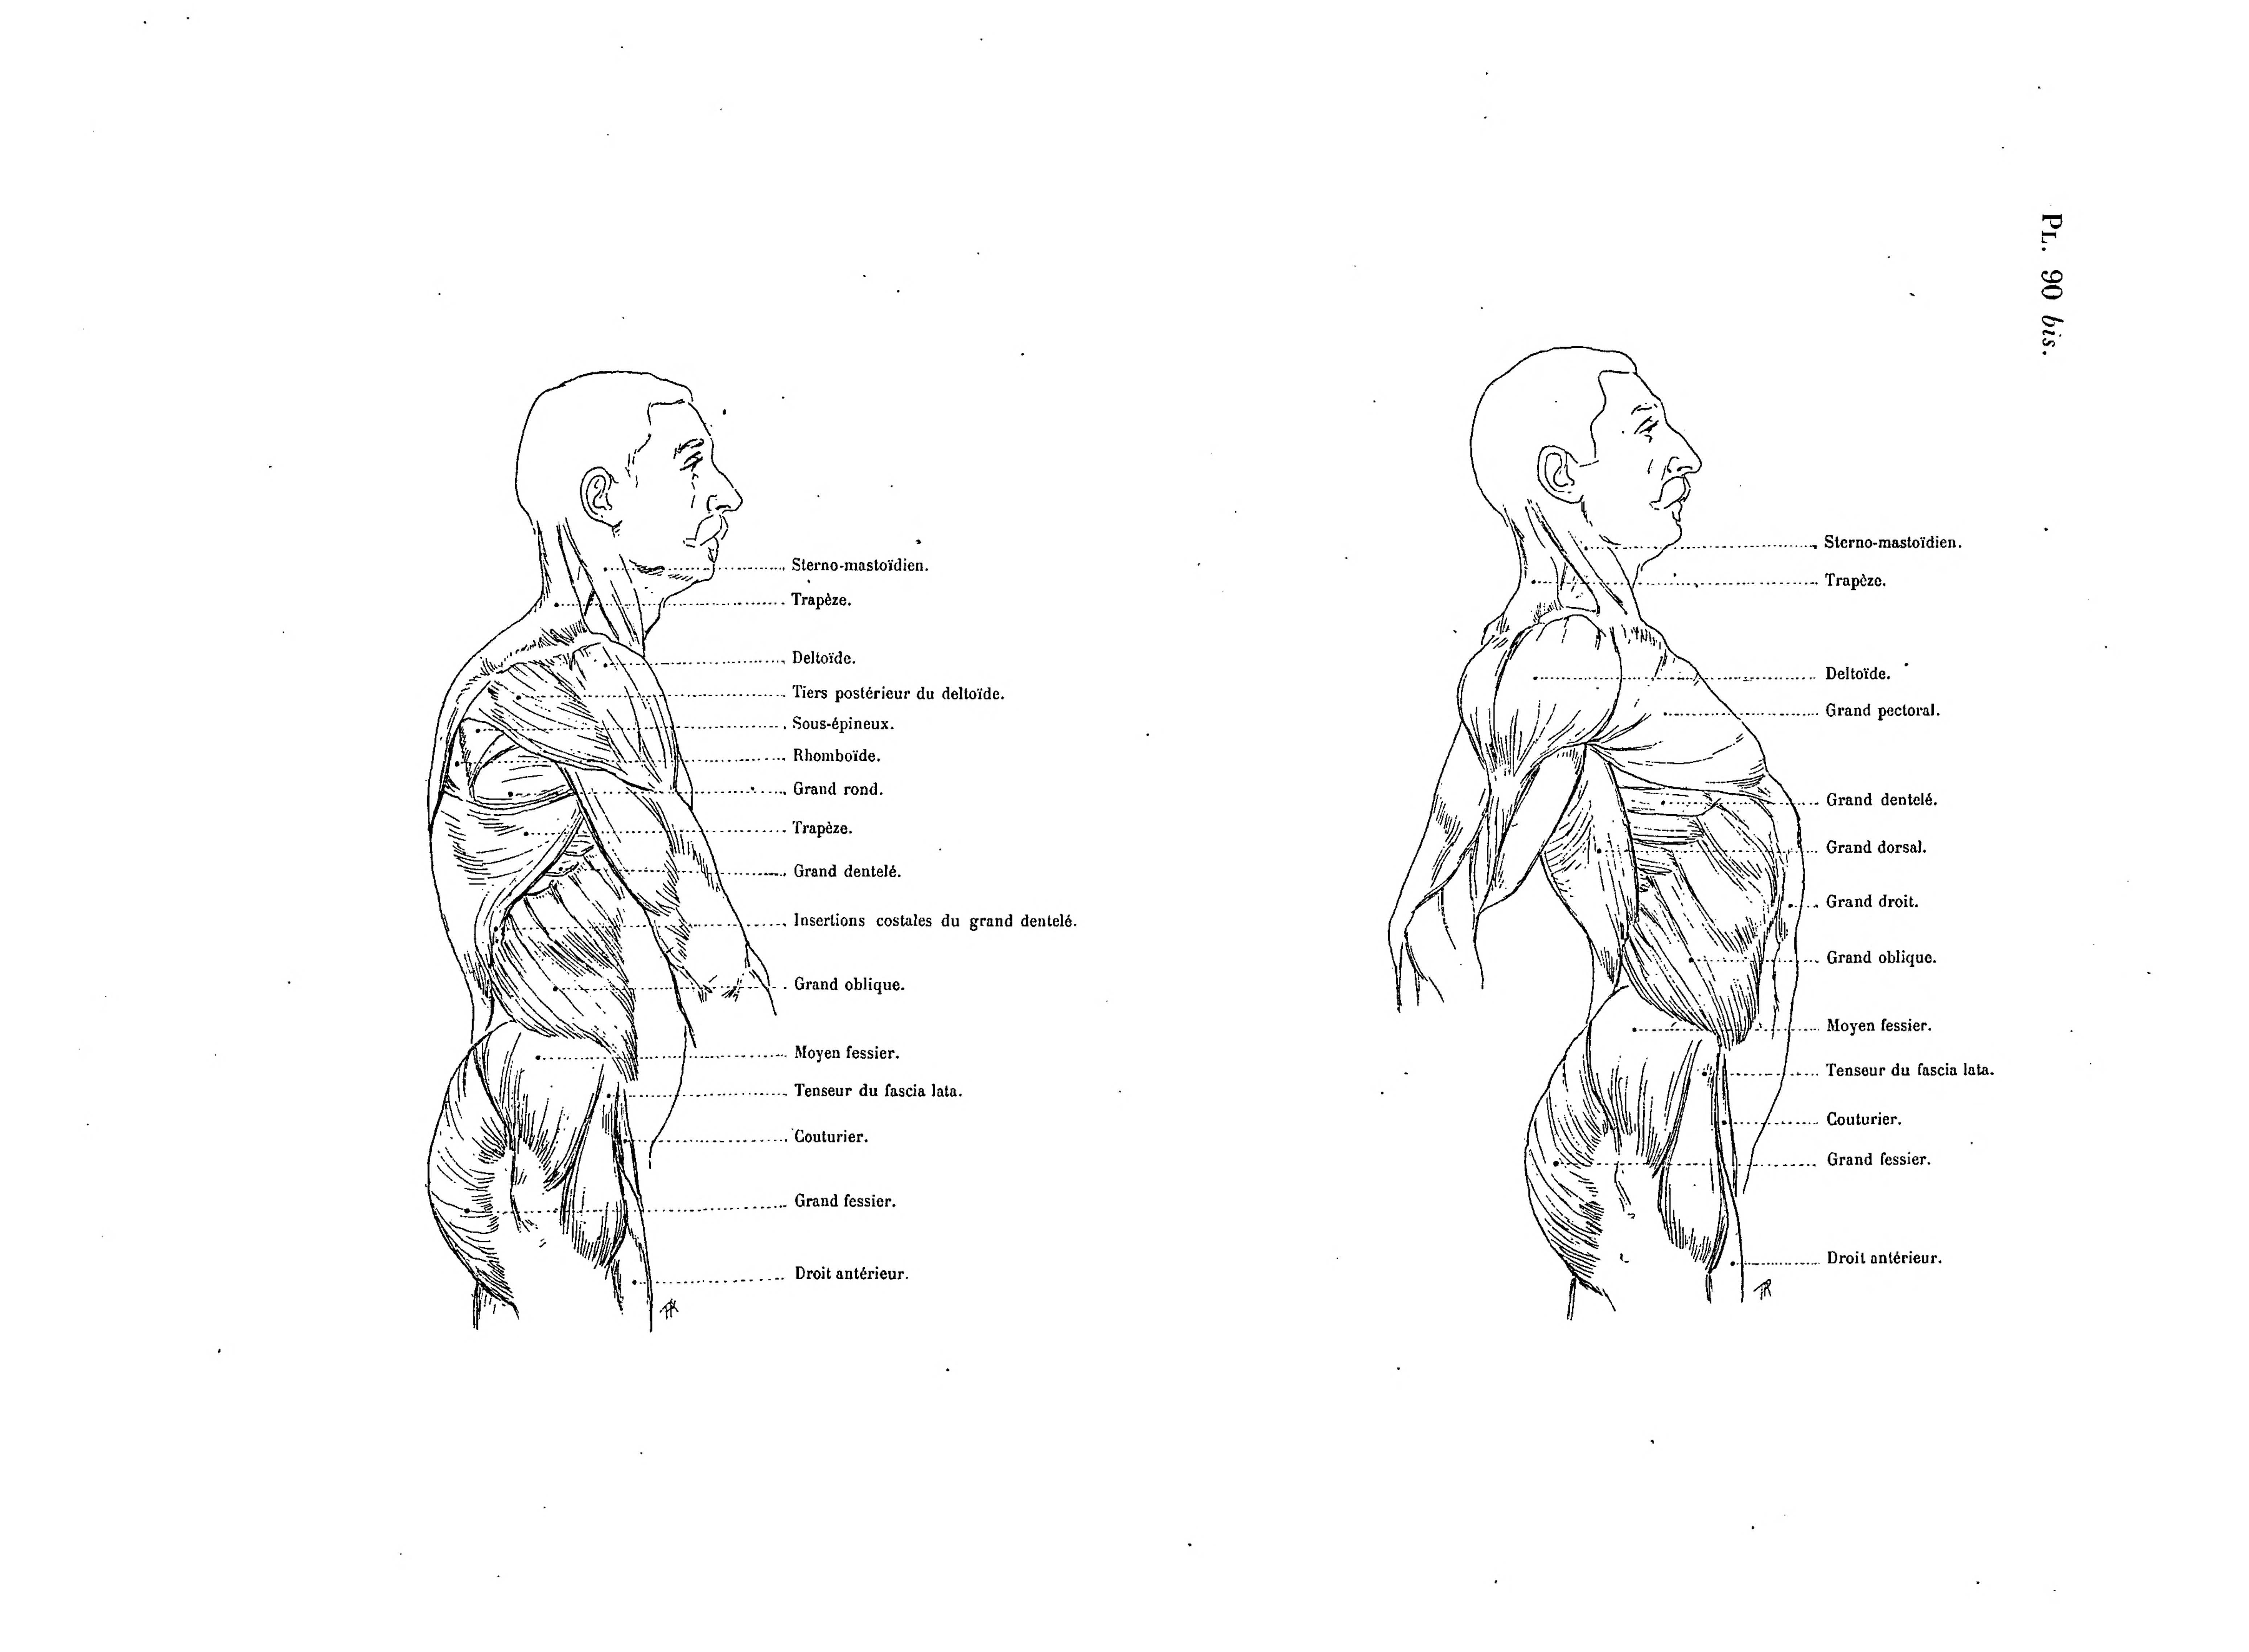 File:Richer - Anatomie artistique, 2 p. 111.png - Wikimedia Commons